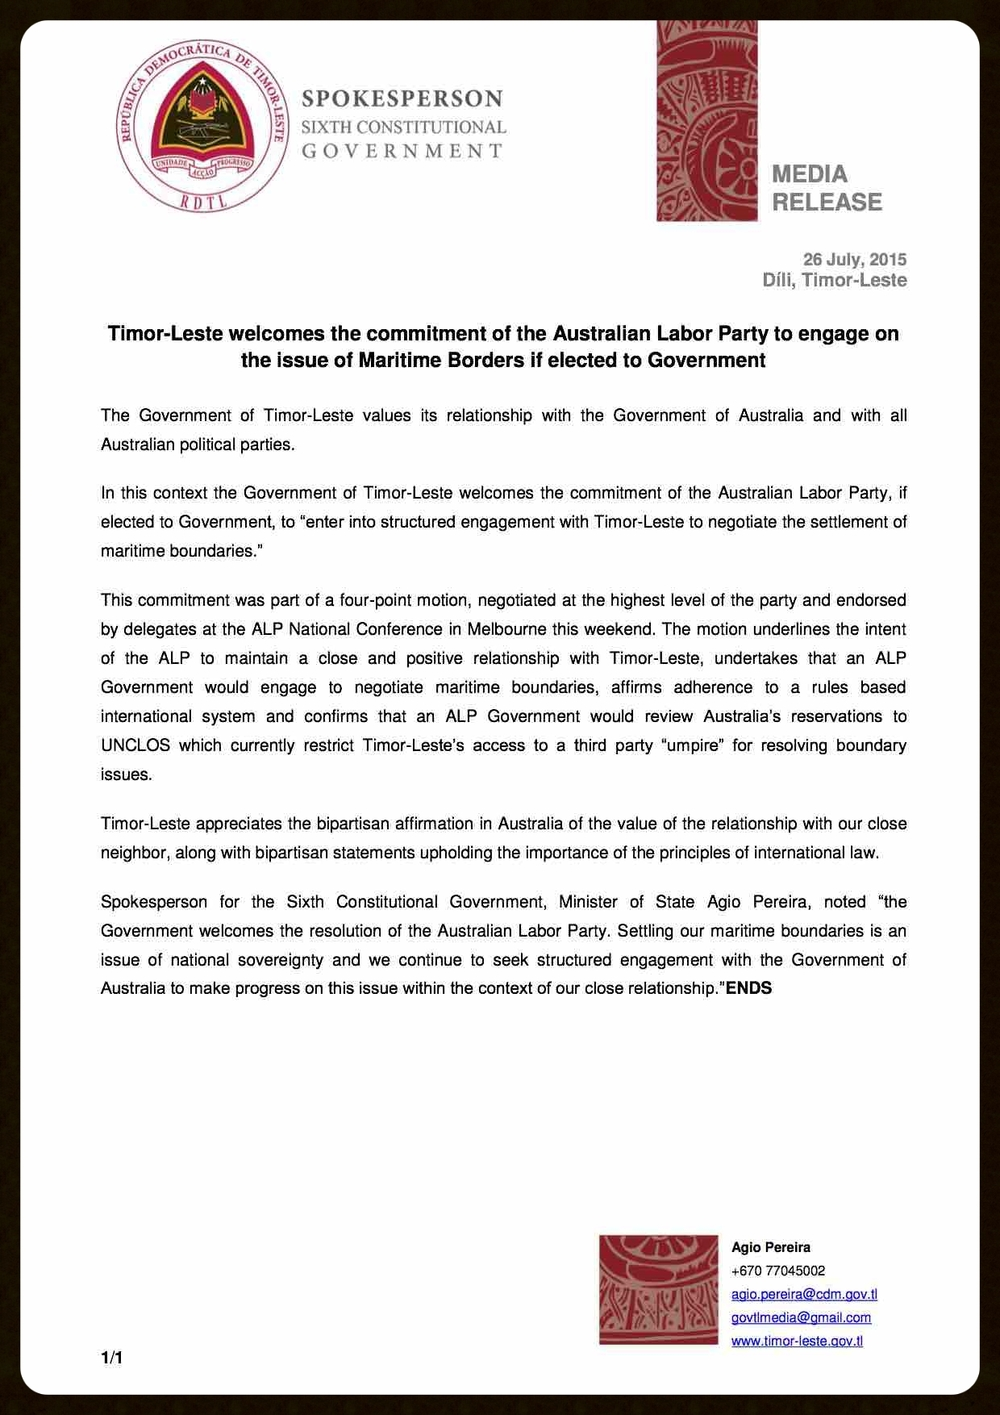 Timor-Leste welcomes the commitment of the Australian Labor Party to engage on the issue of Maritime Borders if elected.jpg